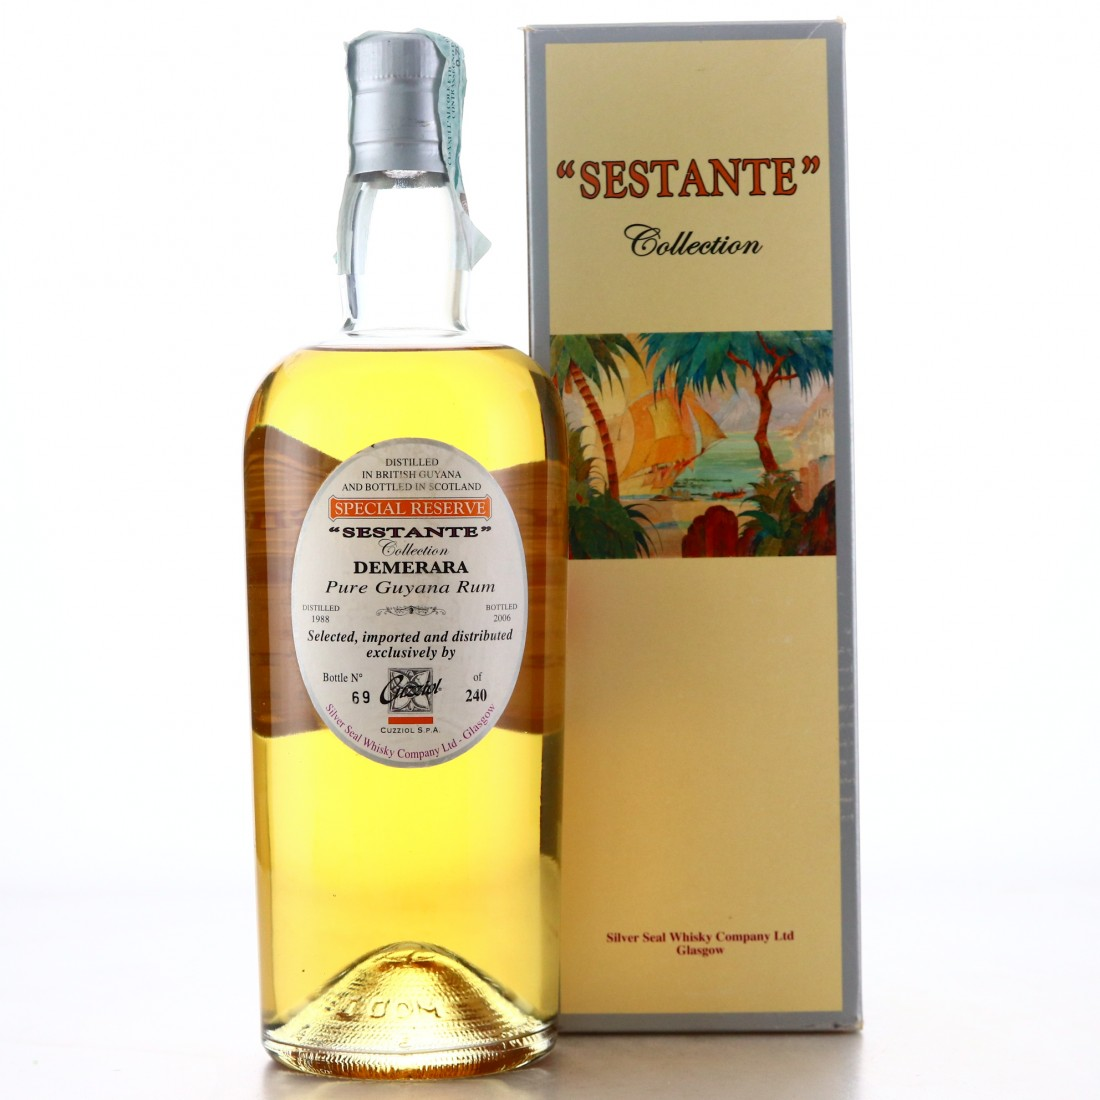 Silver Seal 18 Year Old Demerara Pure Guyana Single Rum / Sestante Collection